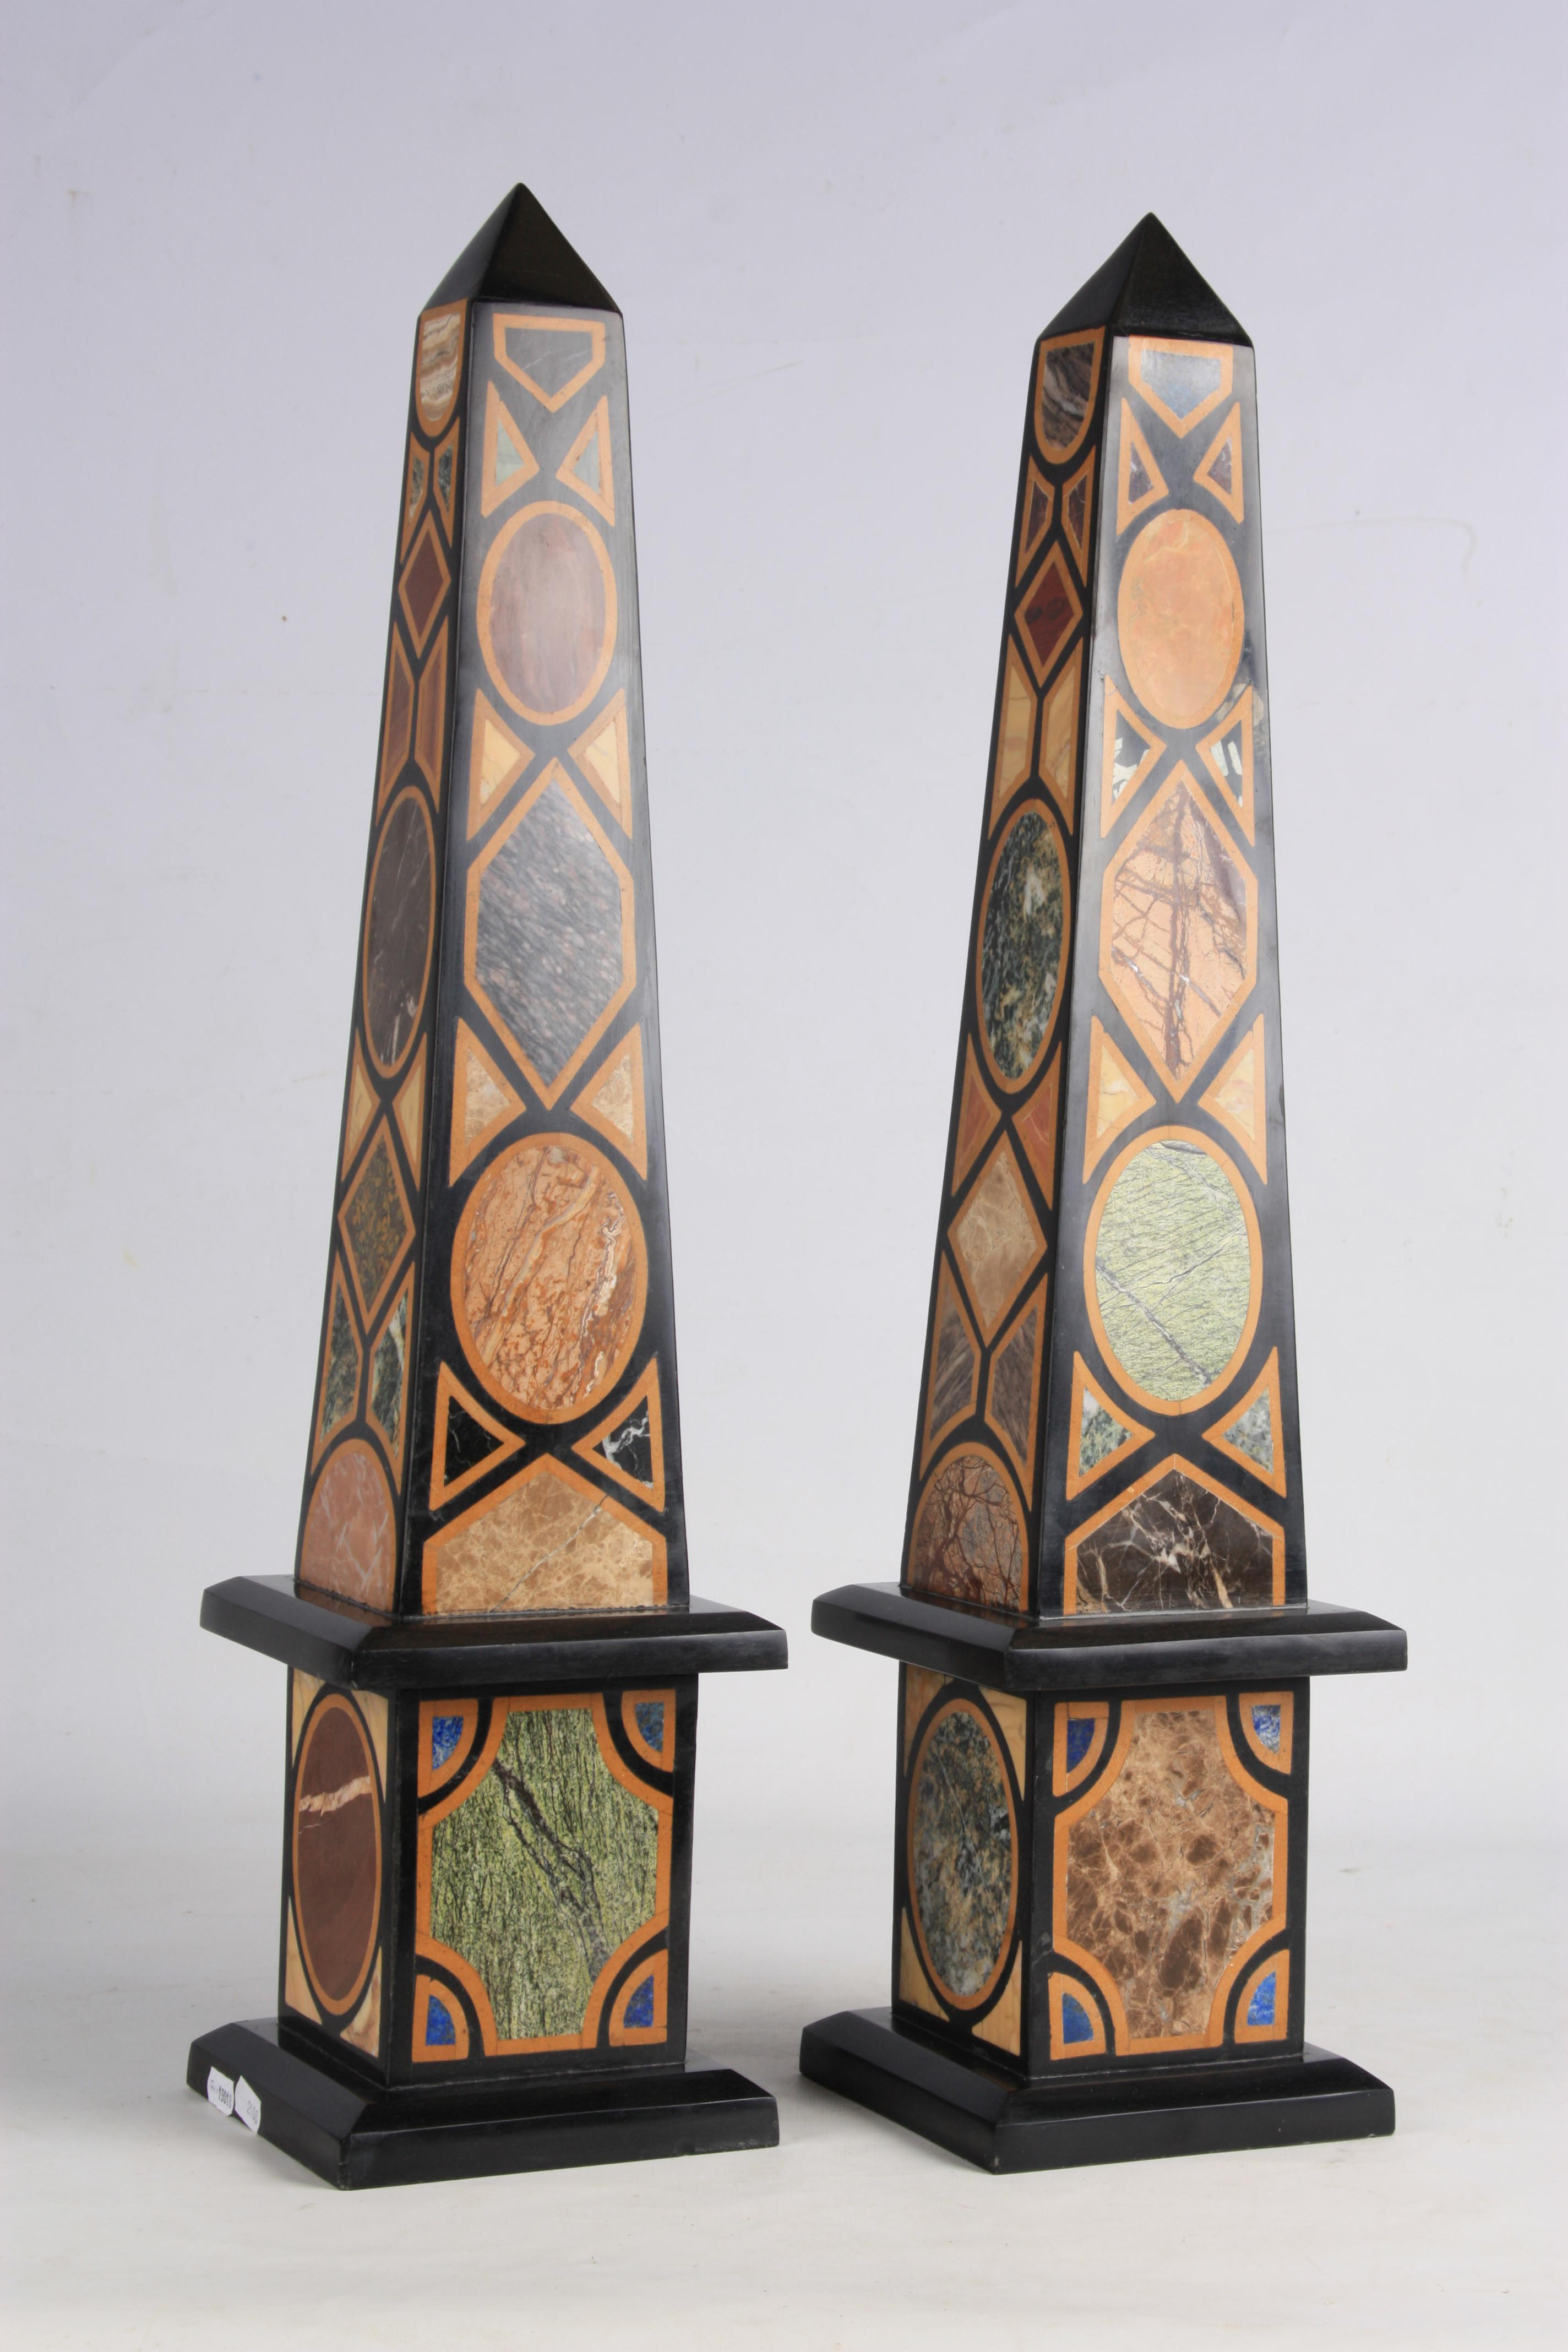 A LARGE AND IMPRESSIVE PAIR OF 20TH CENTURY REGENCY STYLE SPECIMEN MARBLE OBELISKS inlaid with - Image 3 of 7